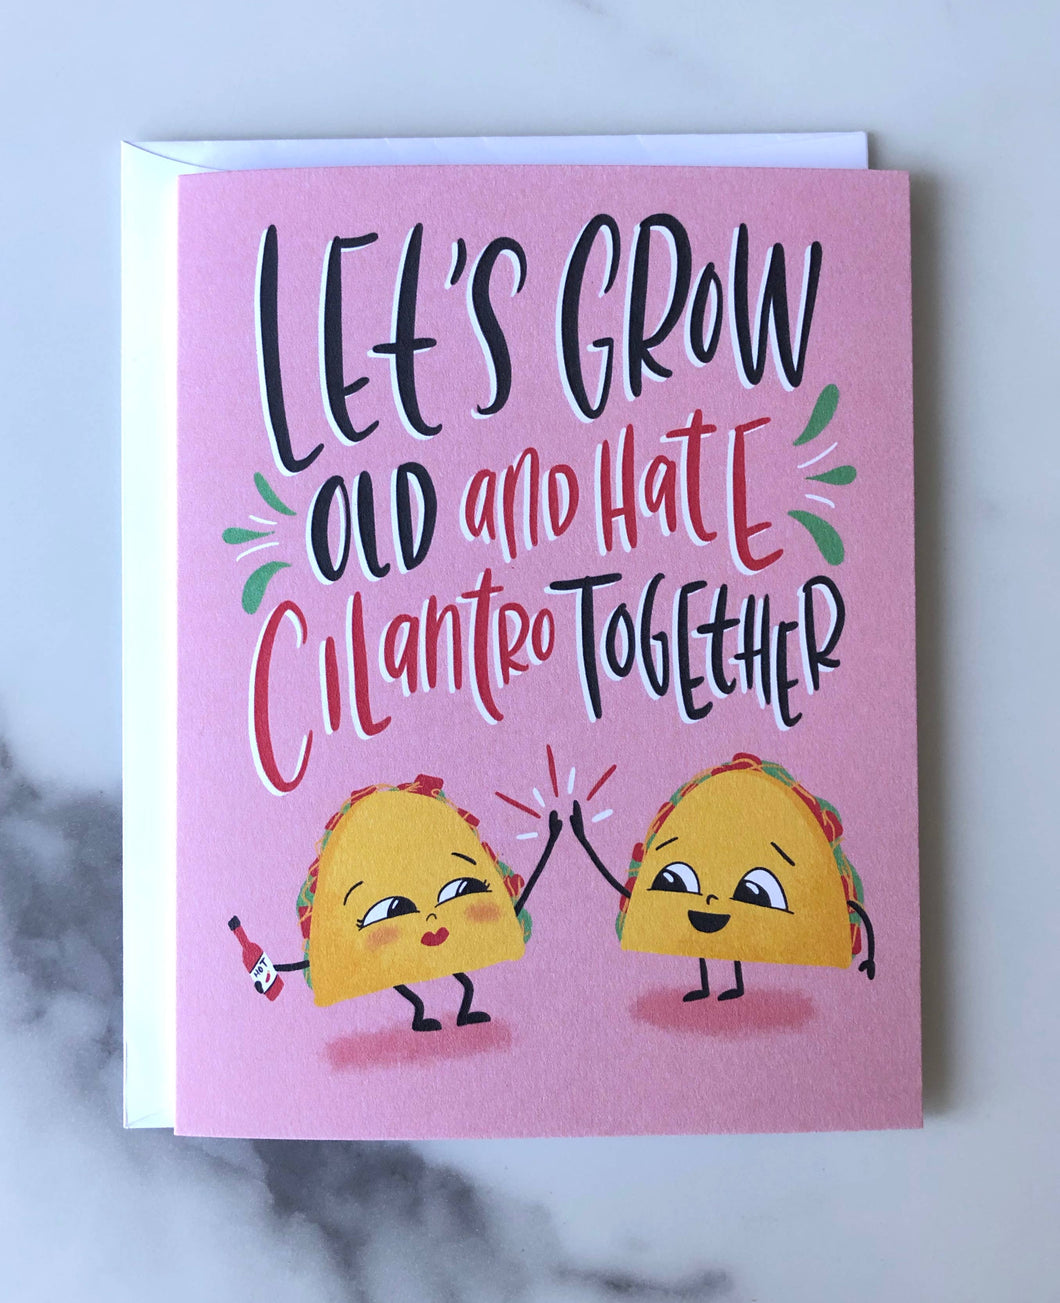 Let's Grow Old and Hate Cilantro Together - A2 Greeting Card